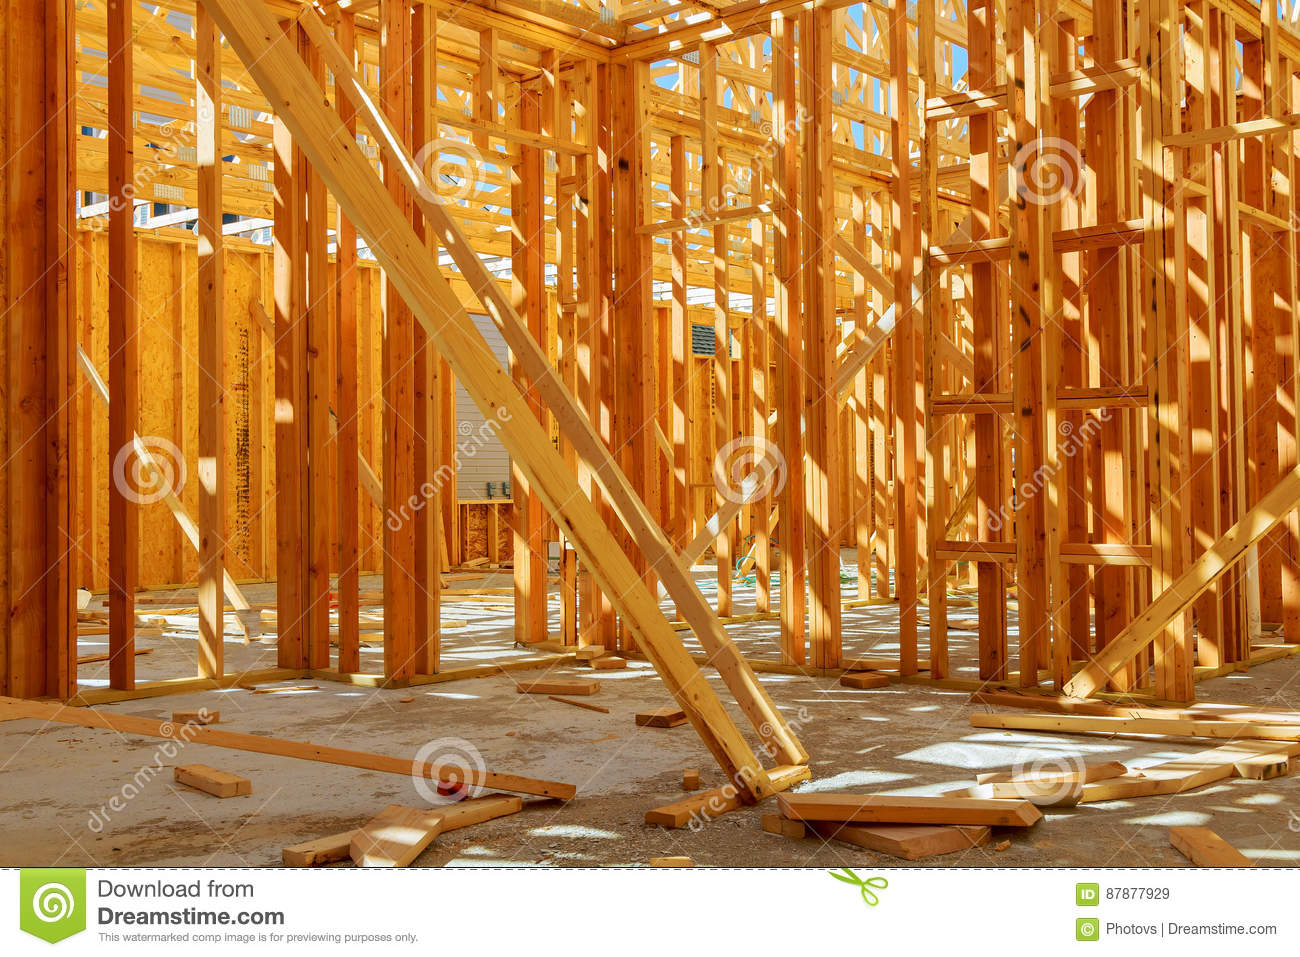 Framed Building Or Residential Home With Basic Stock Image ... on